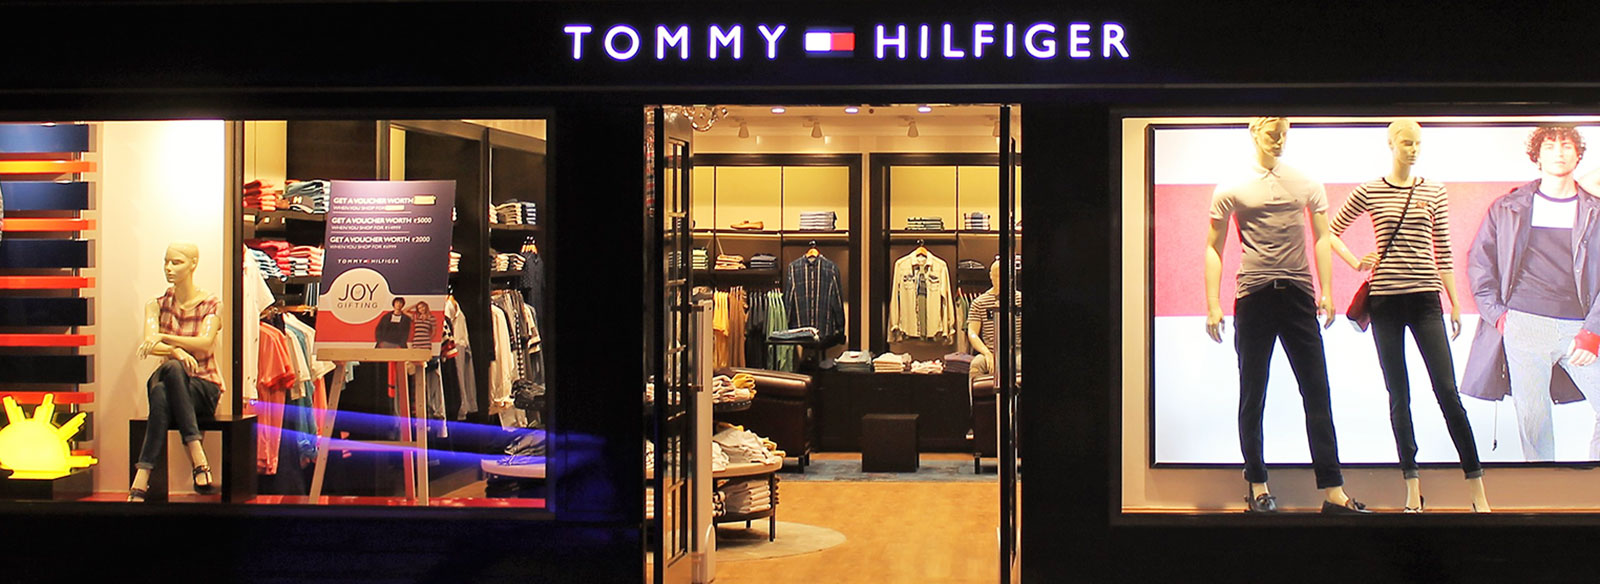 8407f6b00 TOMMY HILFIGER At Yas Mall, Ground Floor, G-146: Sports Wear, Shoes ...